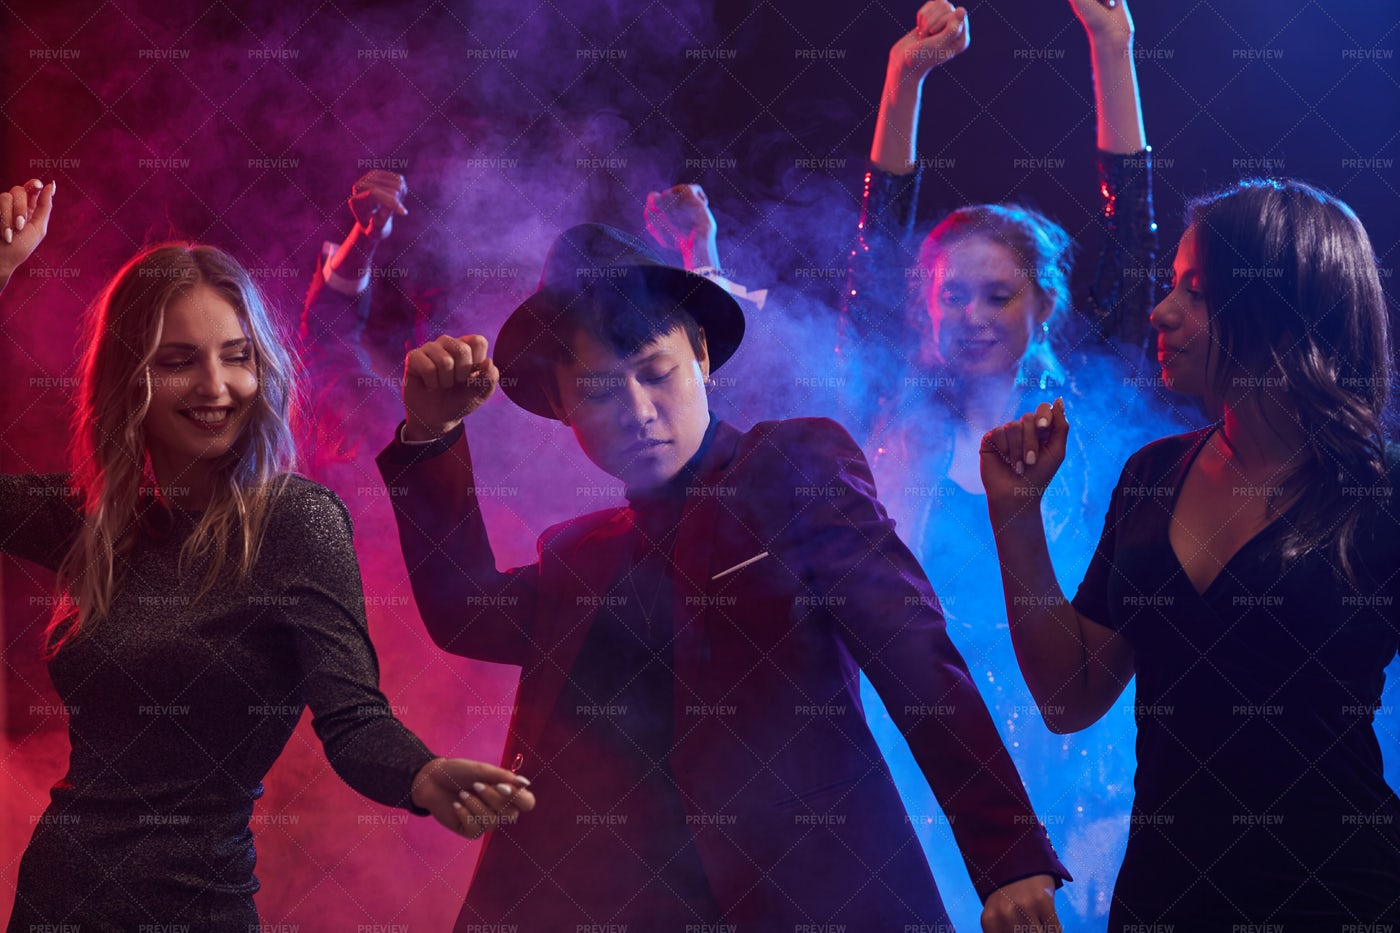 Young People Dancing In Smoky...: Stock Photos